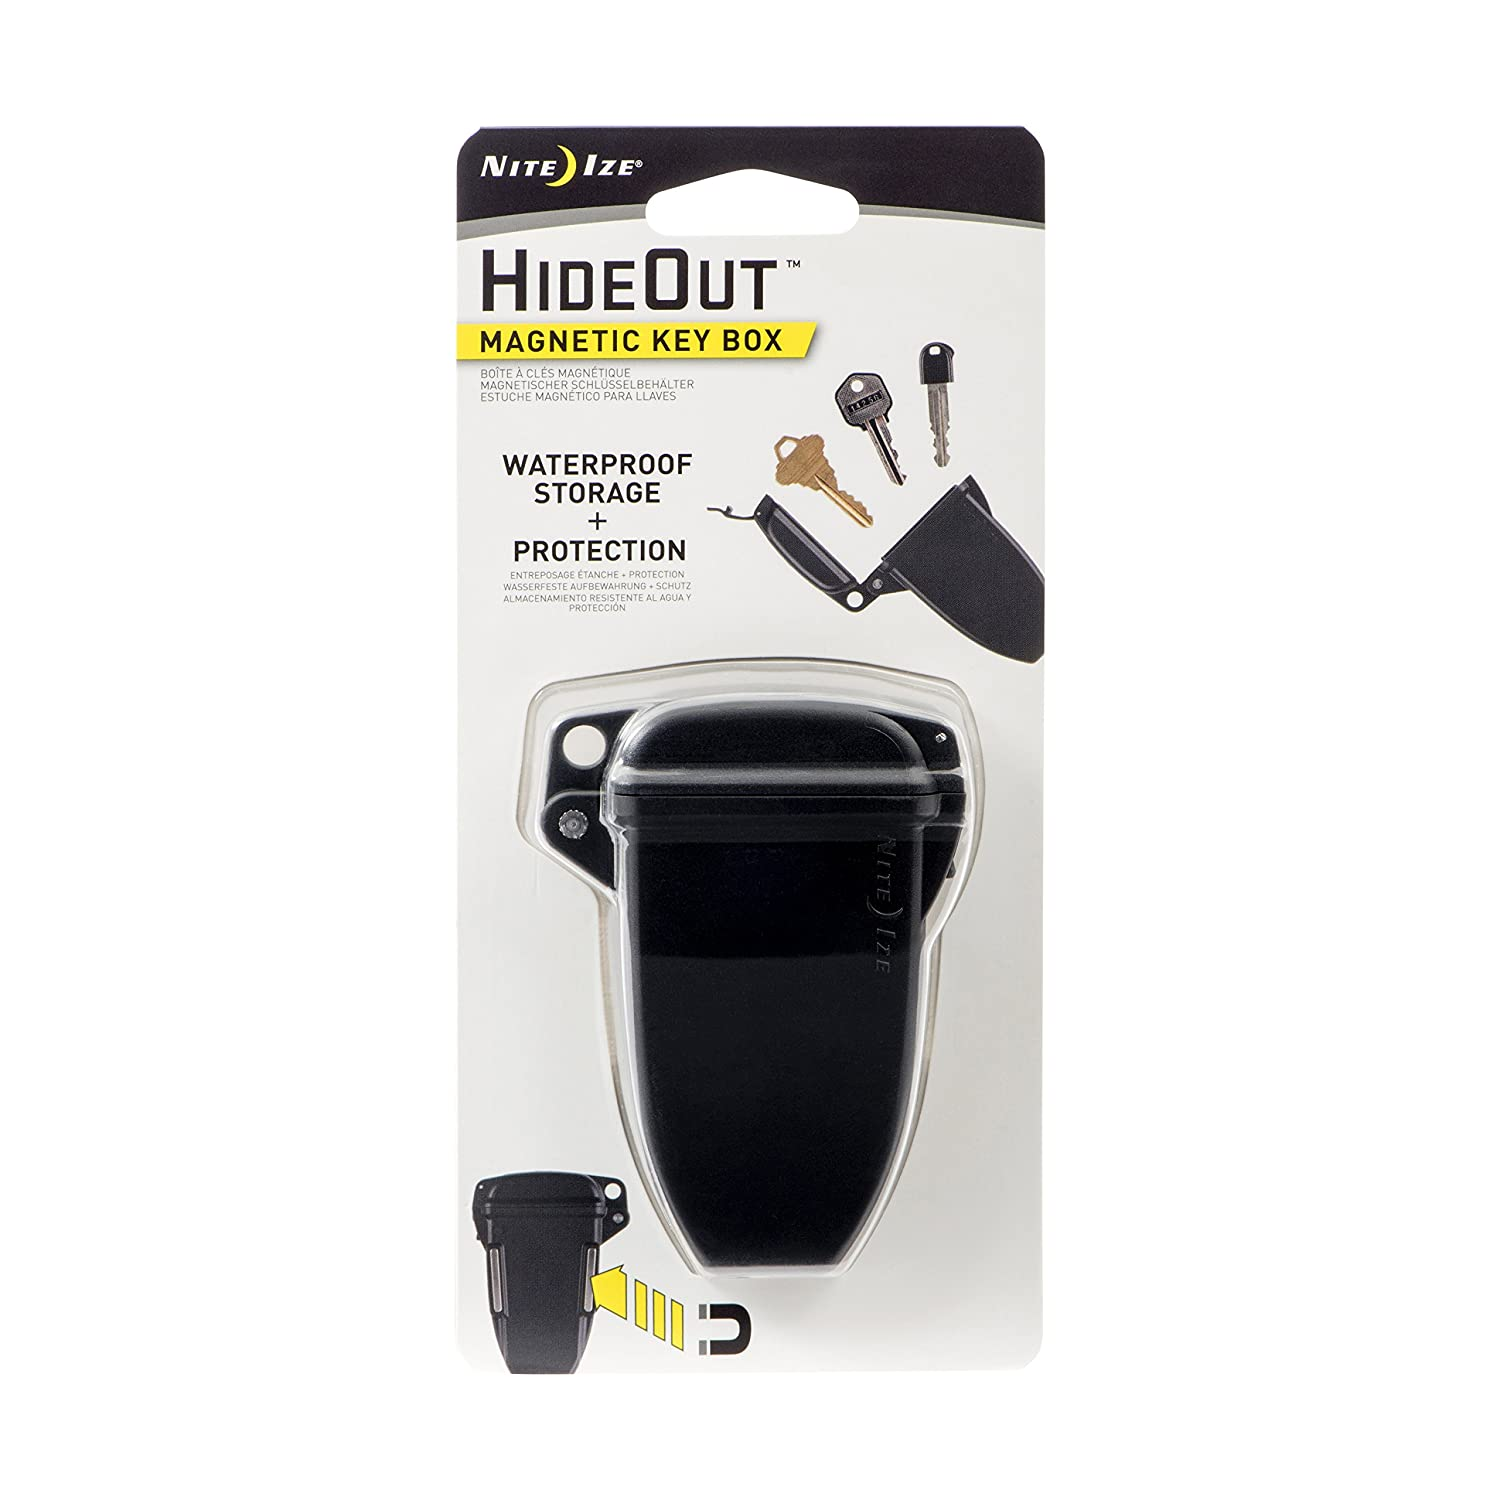 Nite Ize Hideout, Waterproof Magnetic Key Hider Attaches to Metal and Non Metal Surfaces KBS-01-R7